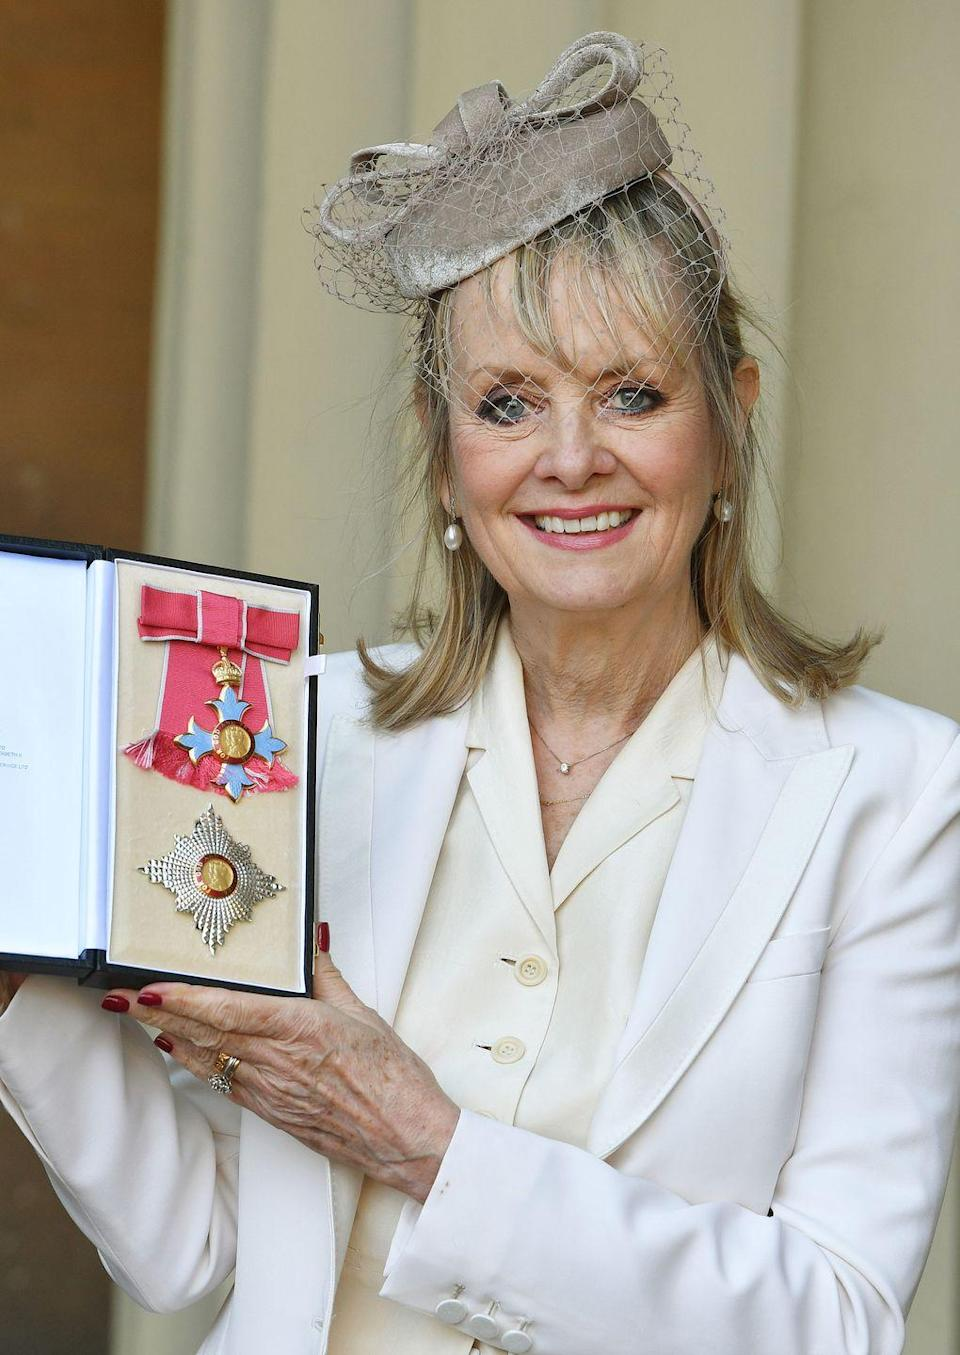 <p>The supermodel became an official Dame Commander of the Order of the British Empire (DBE) in March 2019.</p>